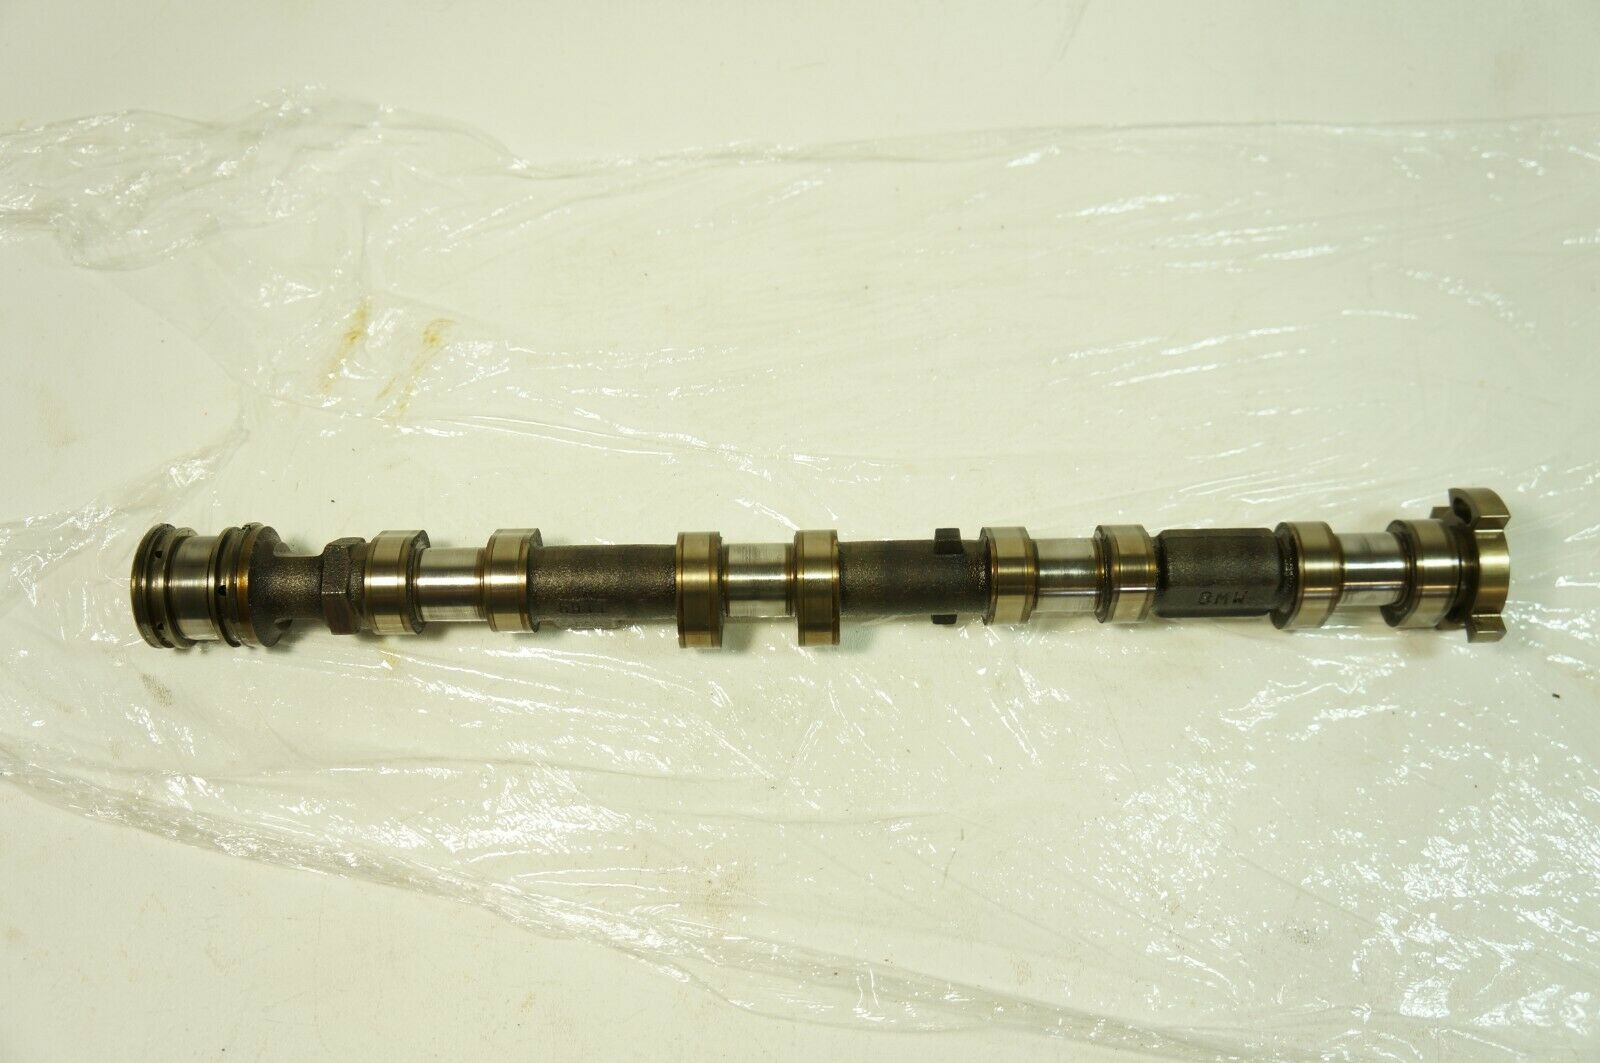 Used 2006 BMW 750Li Camshafts, Lifters and Parts for Sale